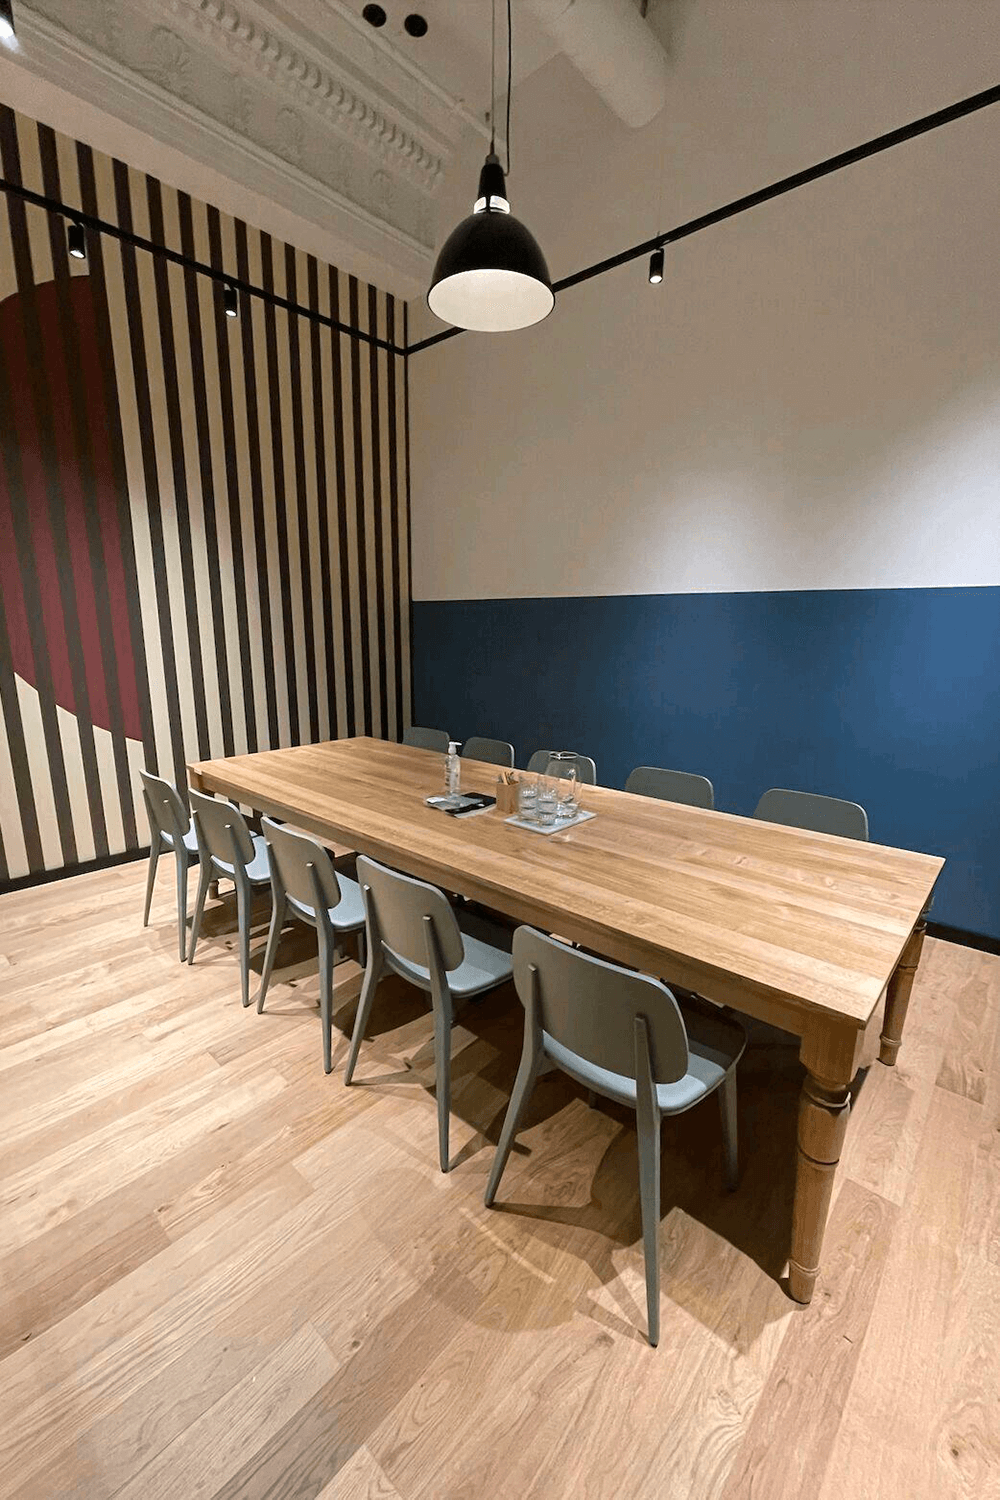 https://tableplacechairs.com/wp-content/uploads/2021/05/MINDSPACE-PHILADELPHIA-for-web-2.png